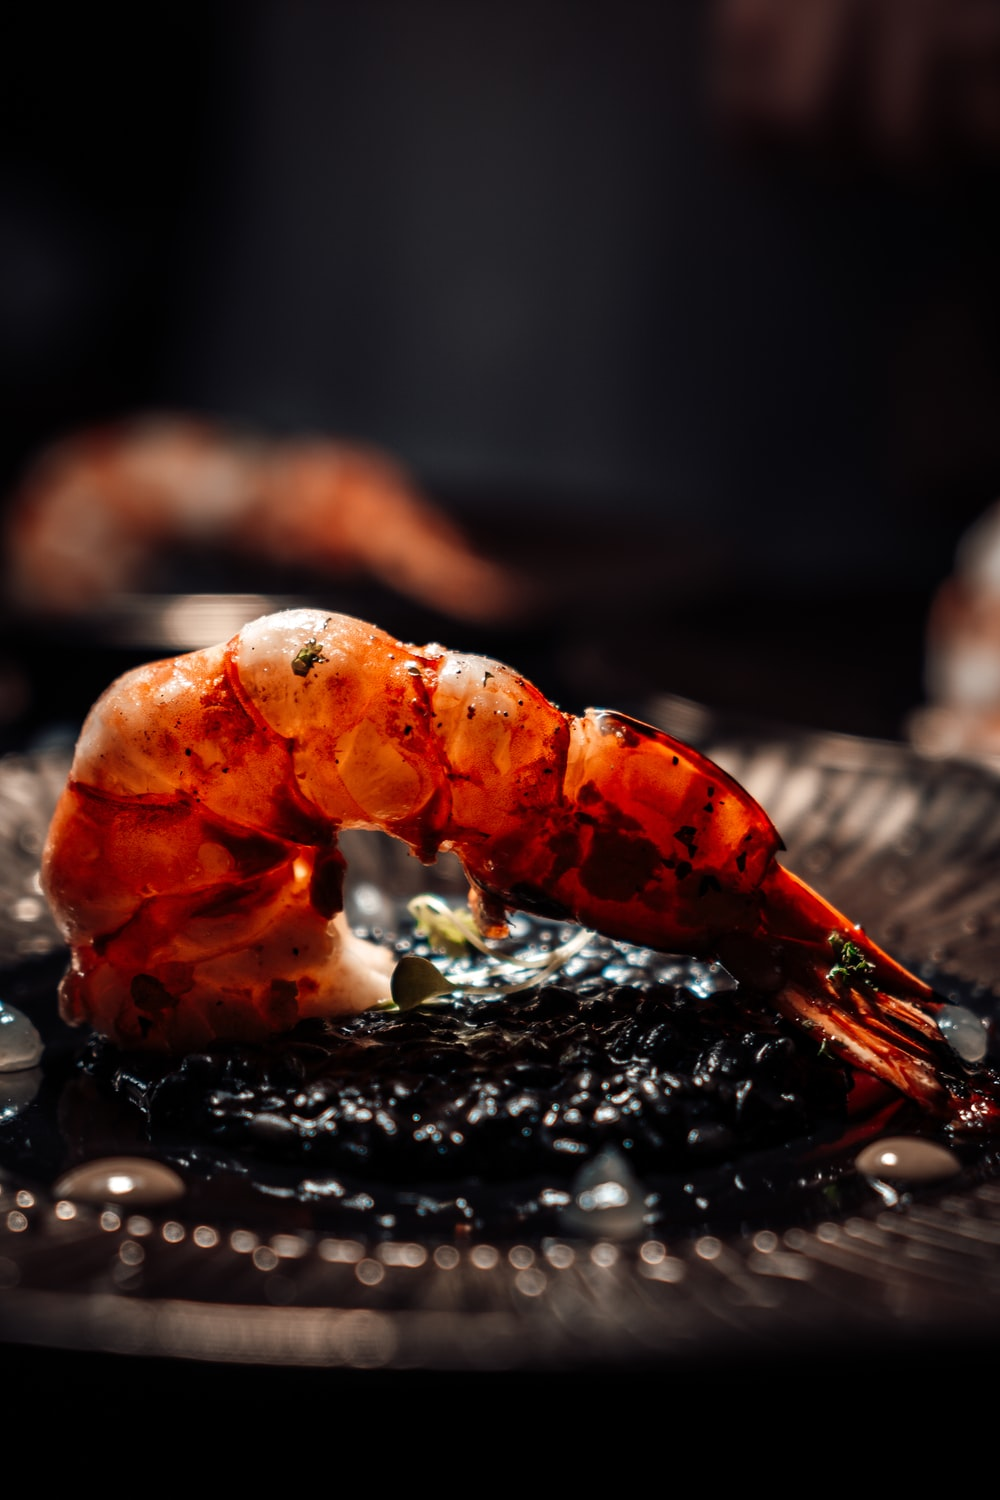 cooked shrimp on black round plate